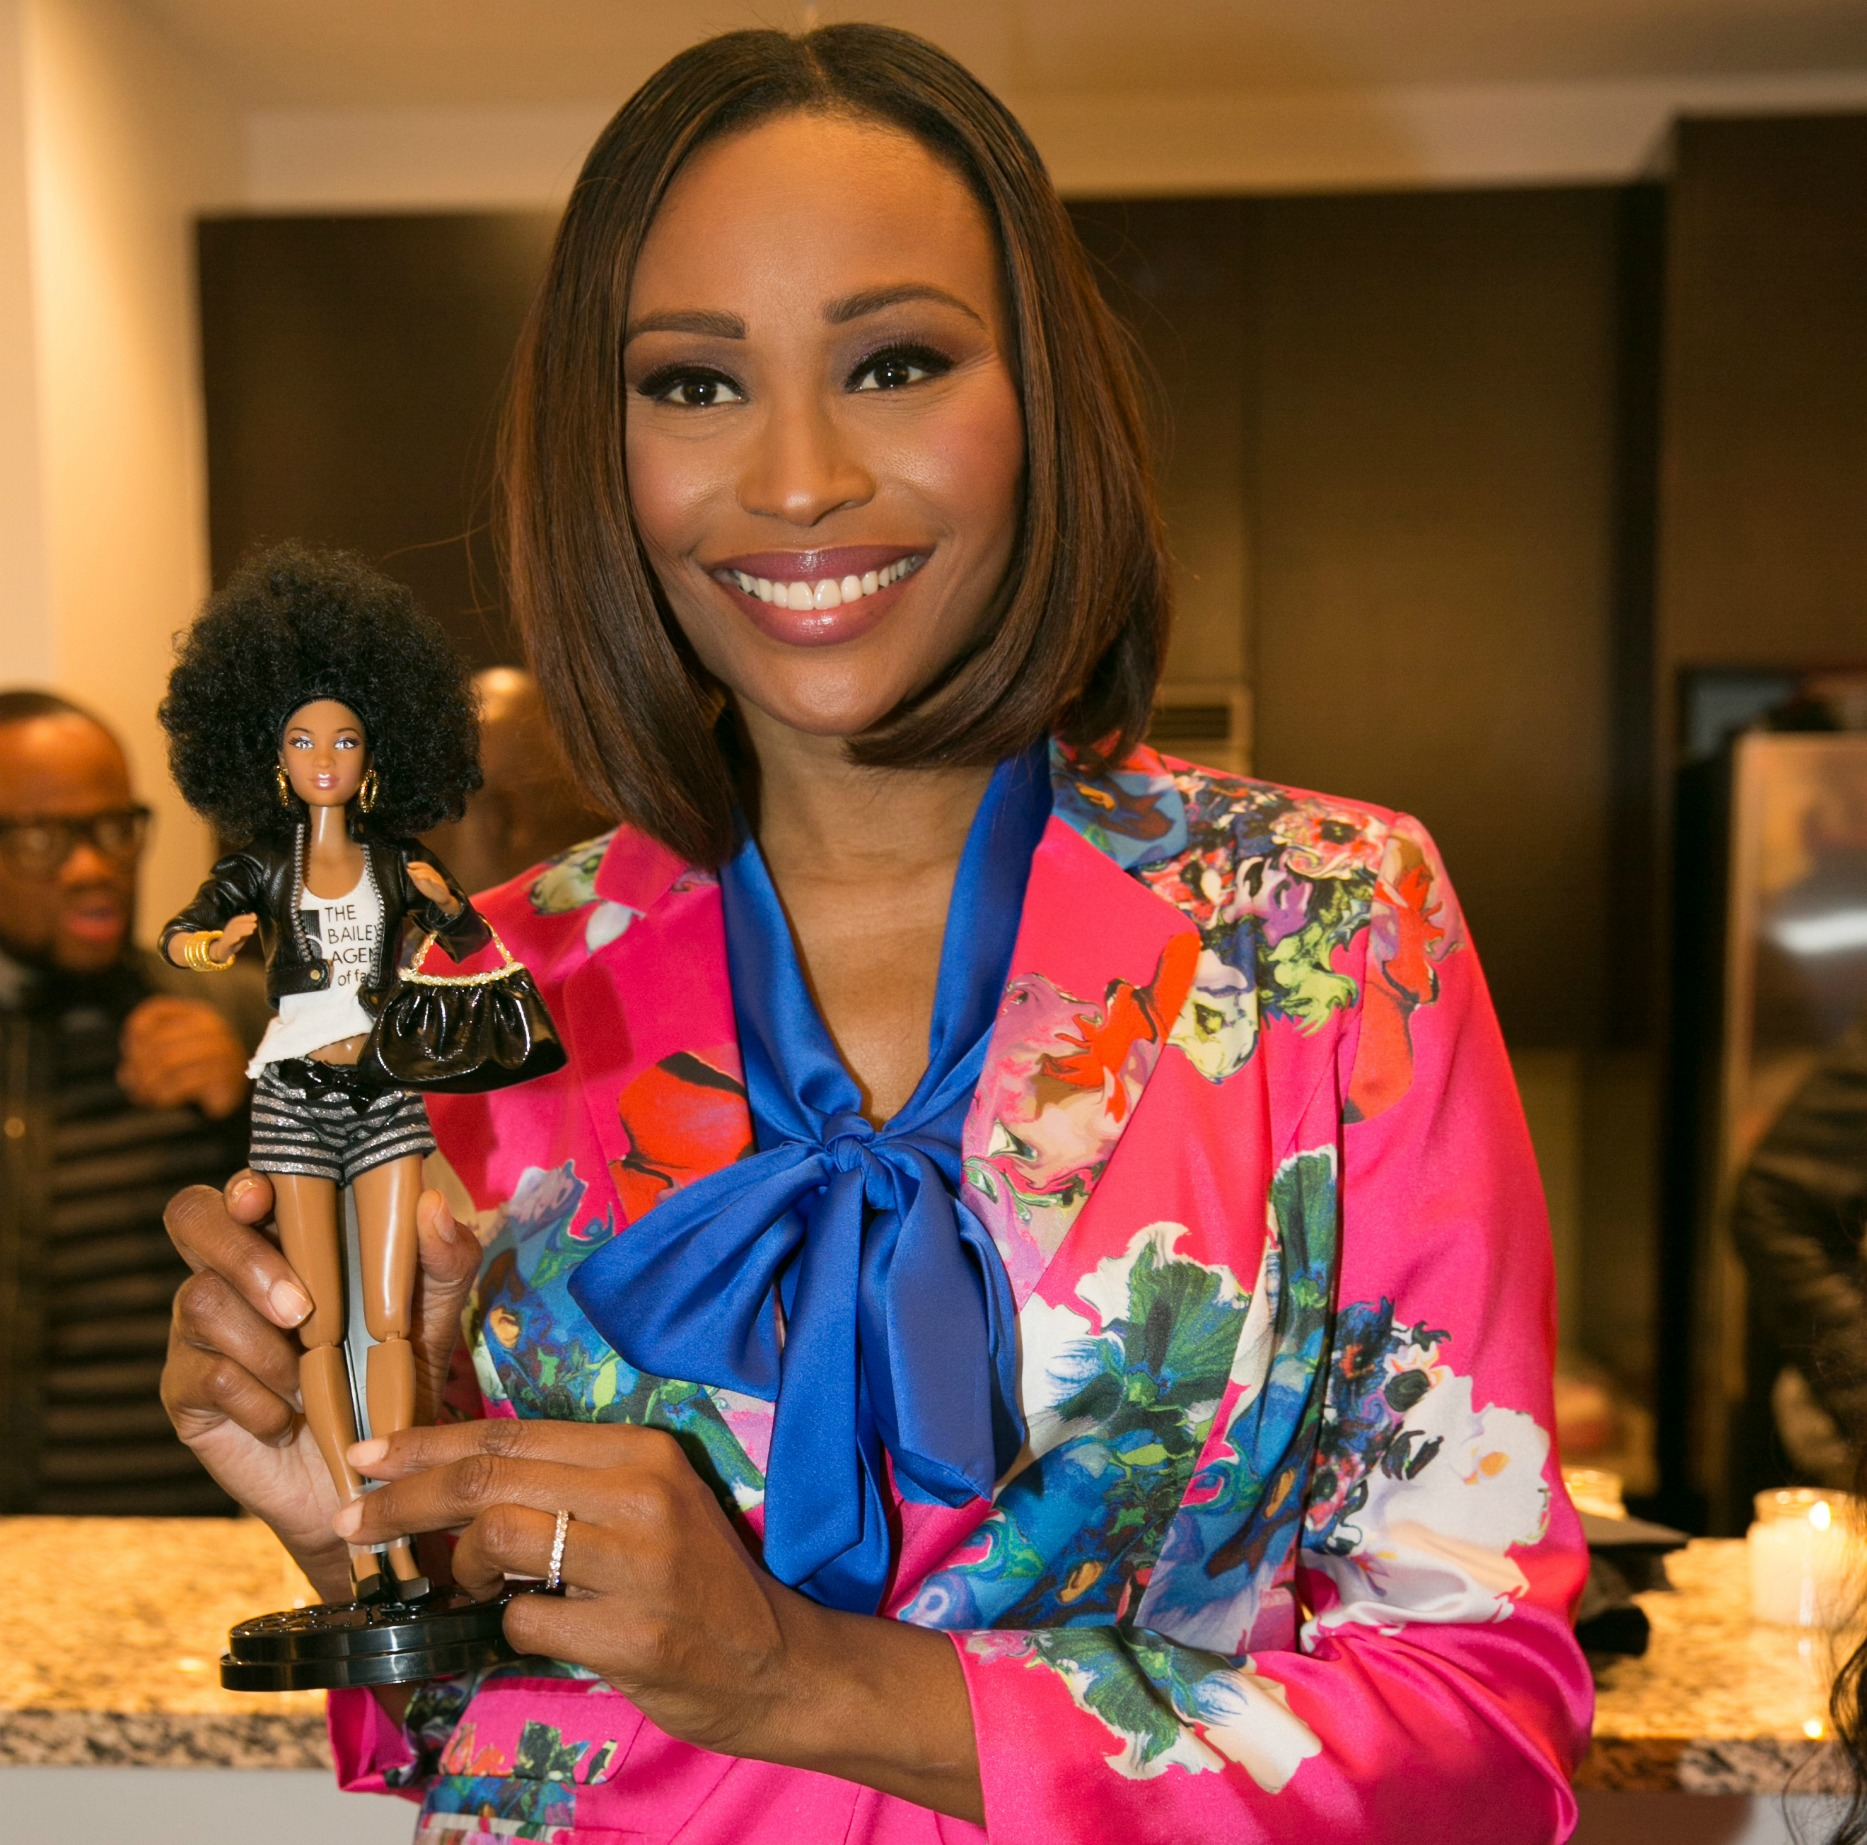 Cynthia Bailey's Snake Photo Has Fans Debating The Subtext Of Her Message